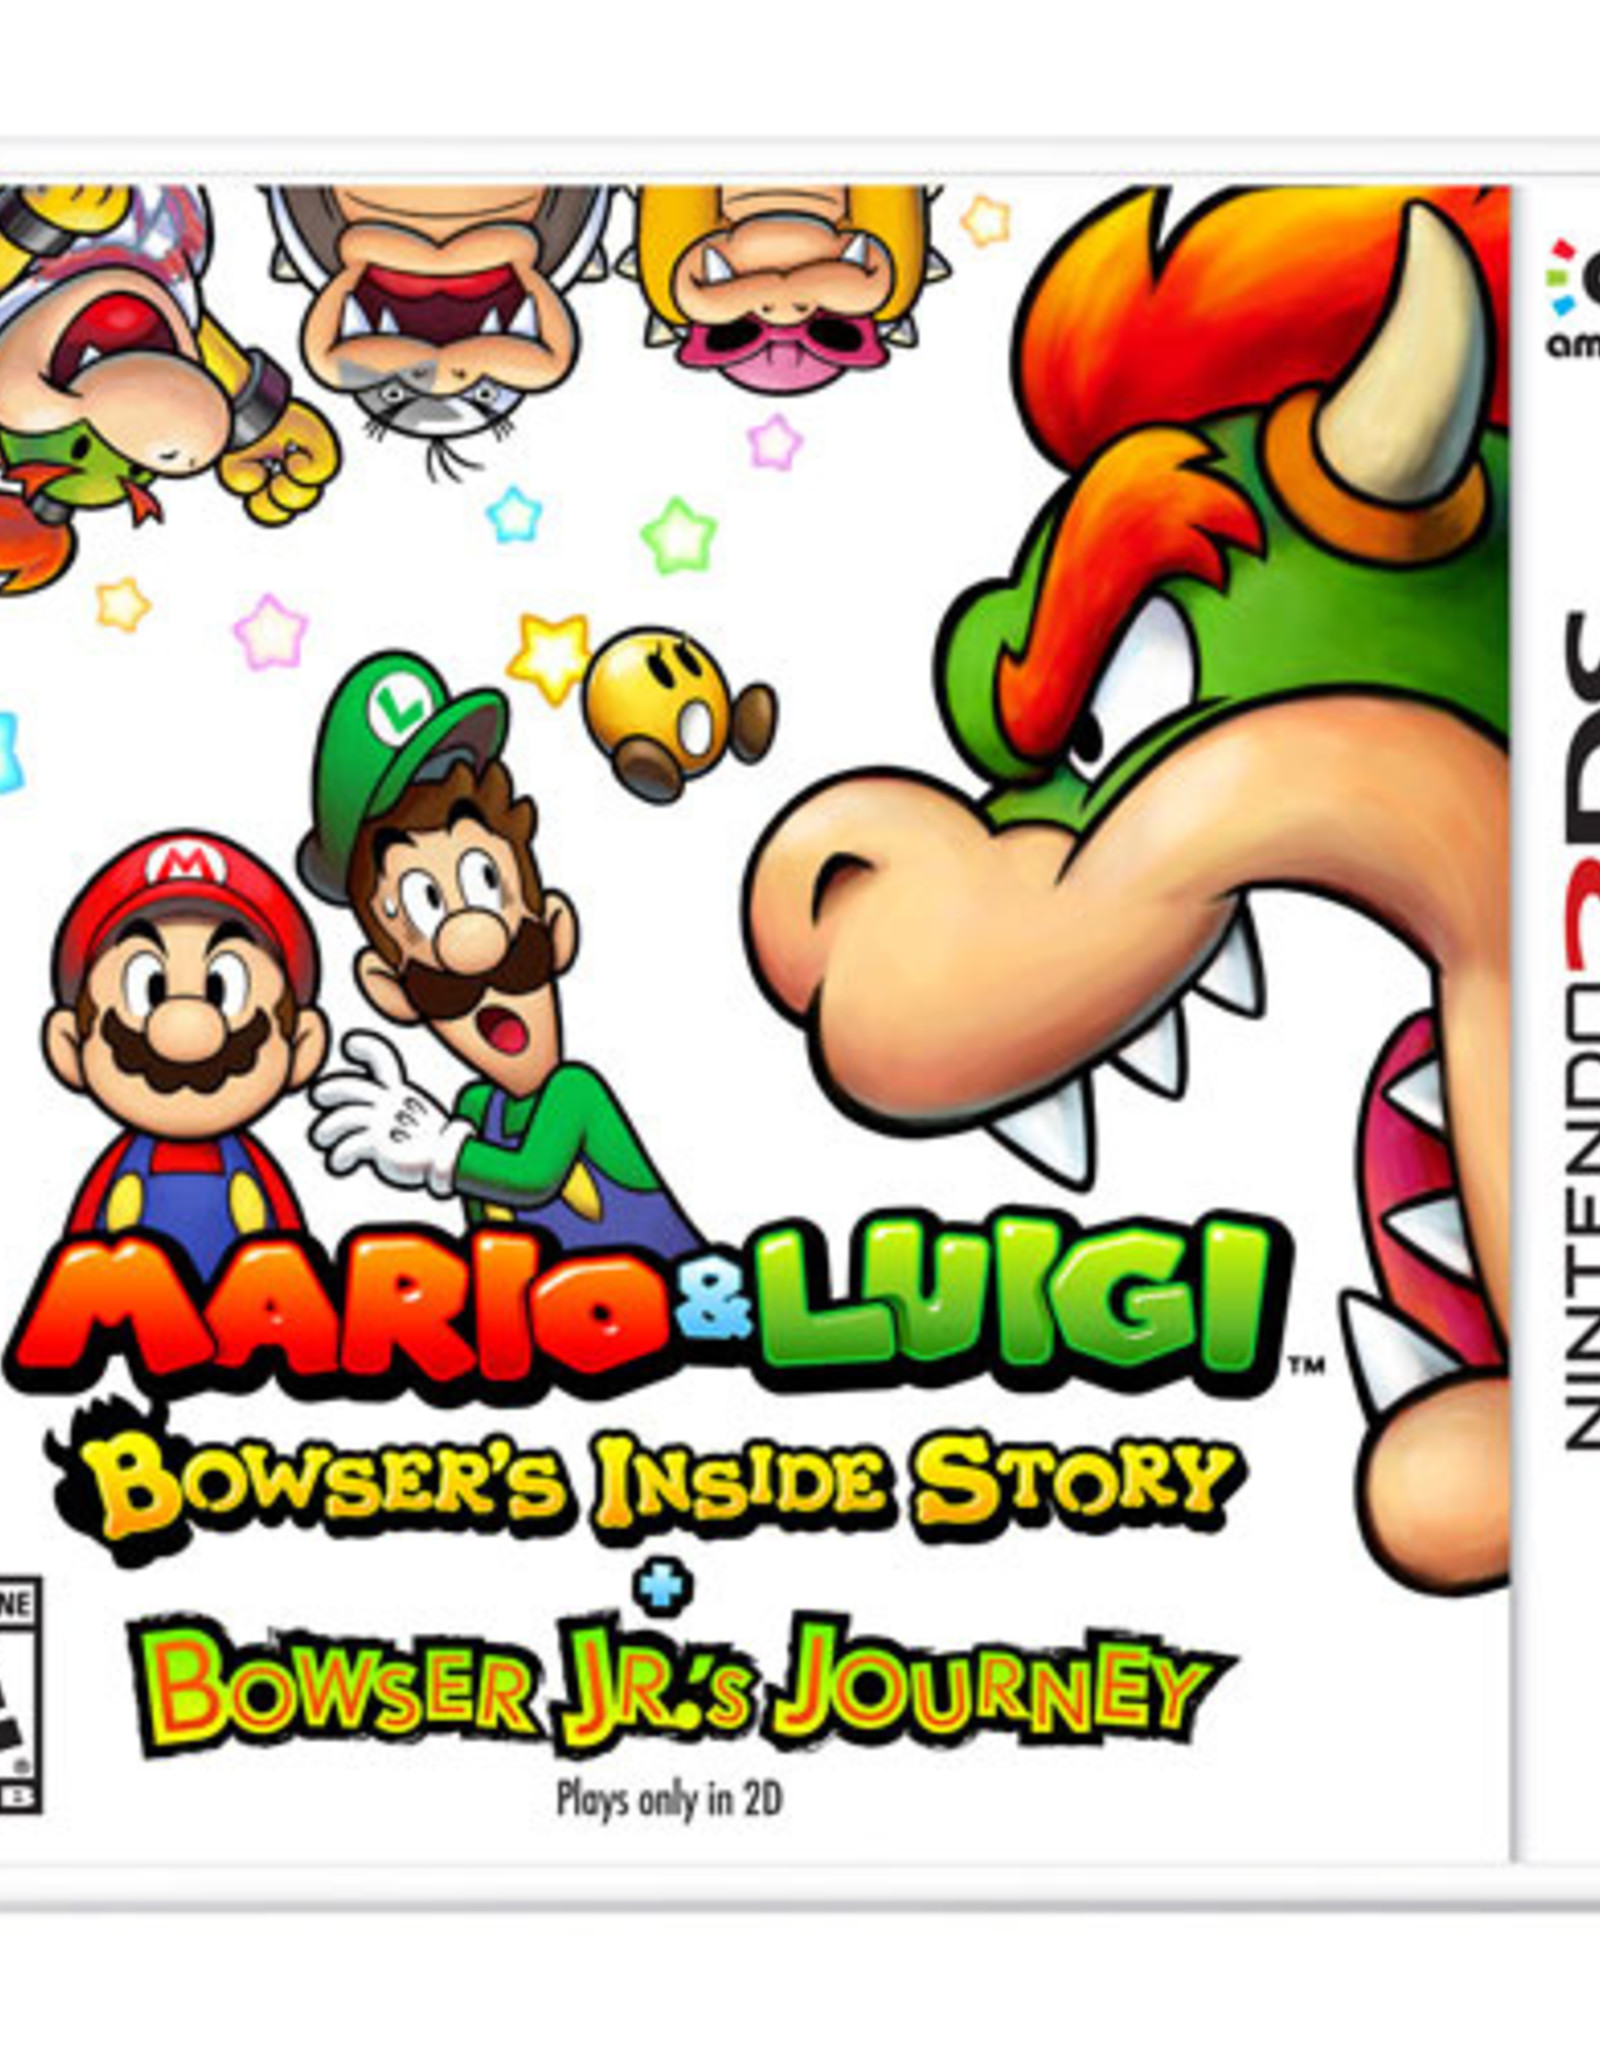 Mario & Luigi: Bowser's Inside Story + Bowser Jr Journey - 3DS NEW